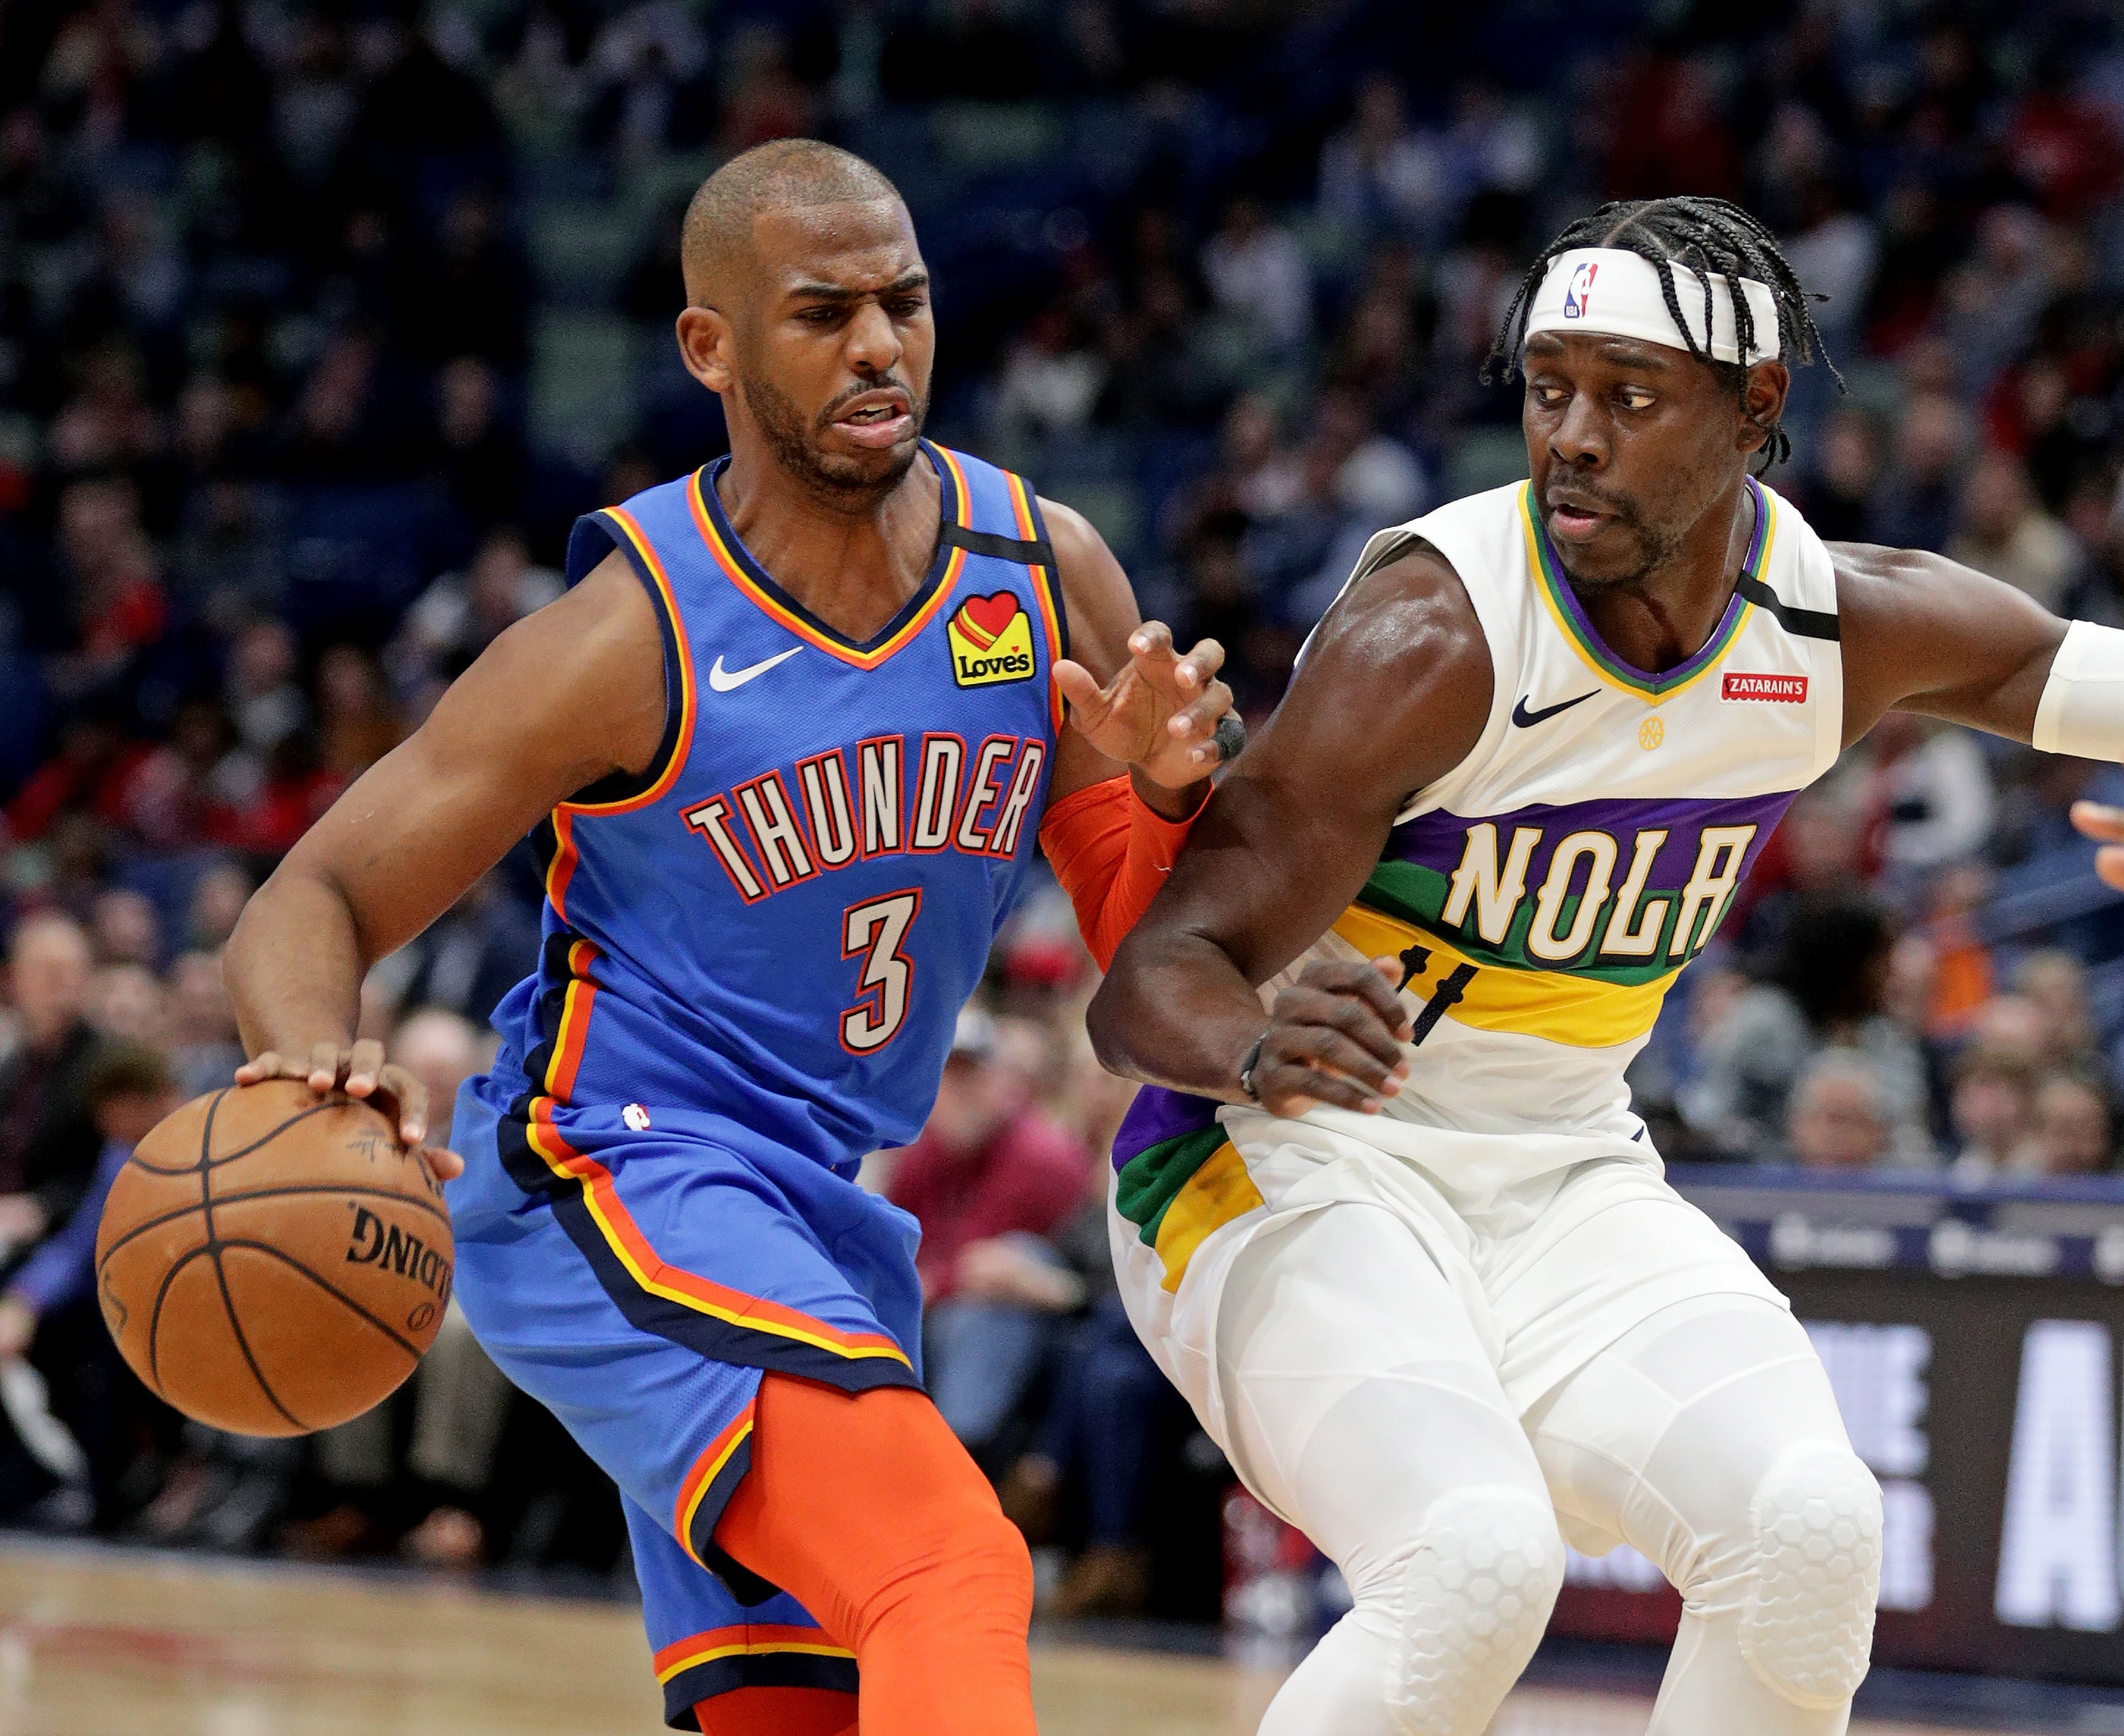 Familiar faces in new places: Notable NBA players changing teams for the 2020-21 season